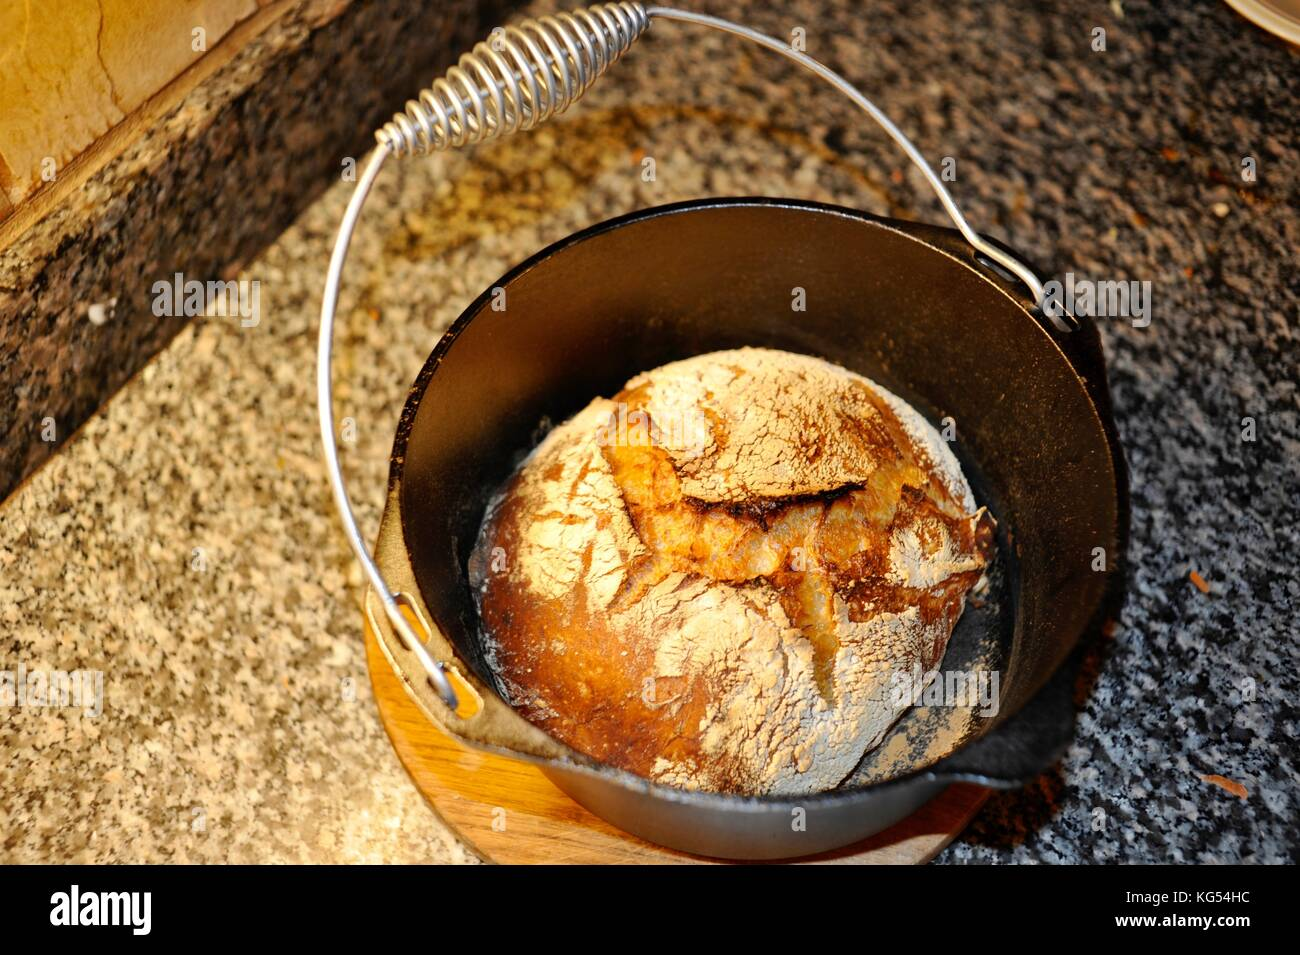 Fresh Crusty Loaf Of Artisanal Homemade Bread Baked In A Lodge Dutch Stock Photo Alamy